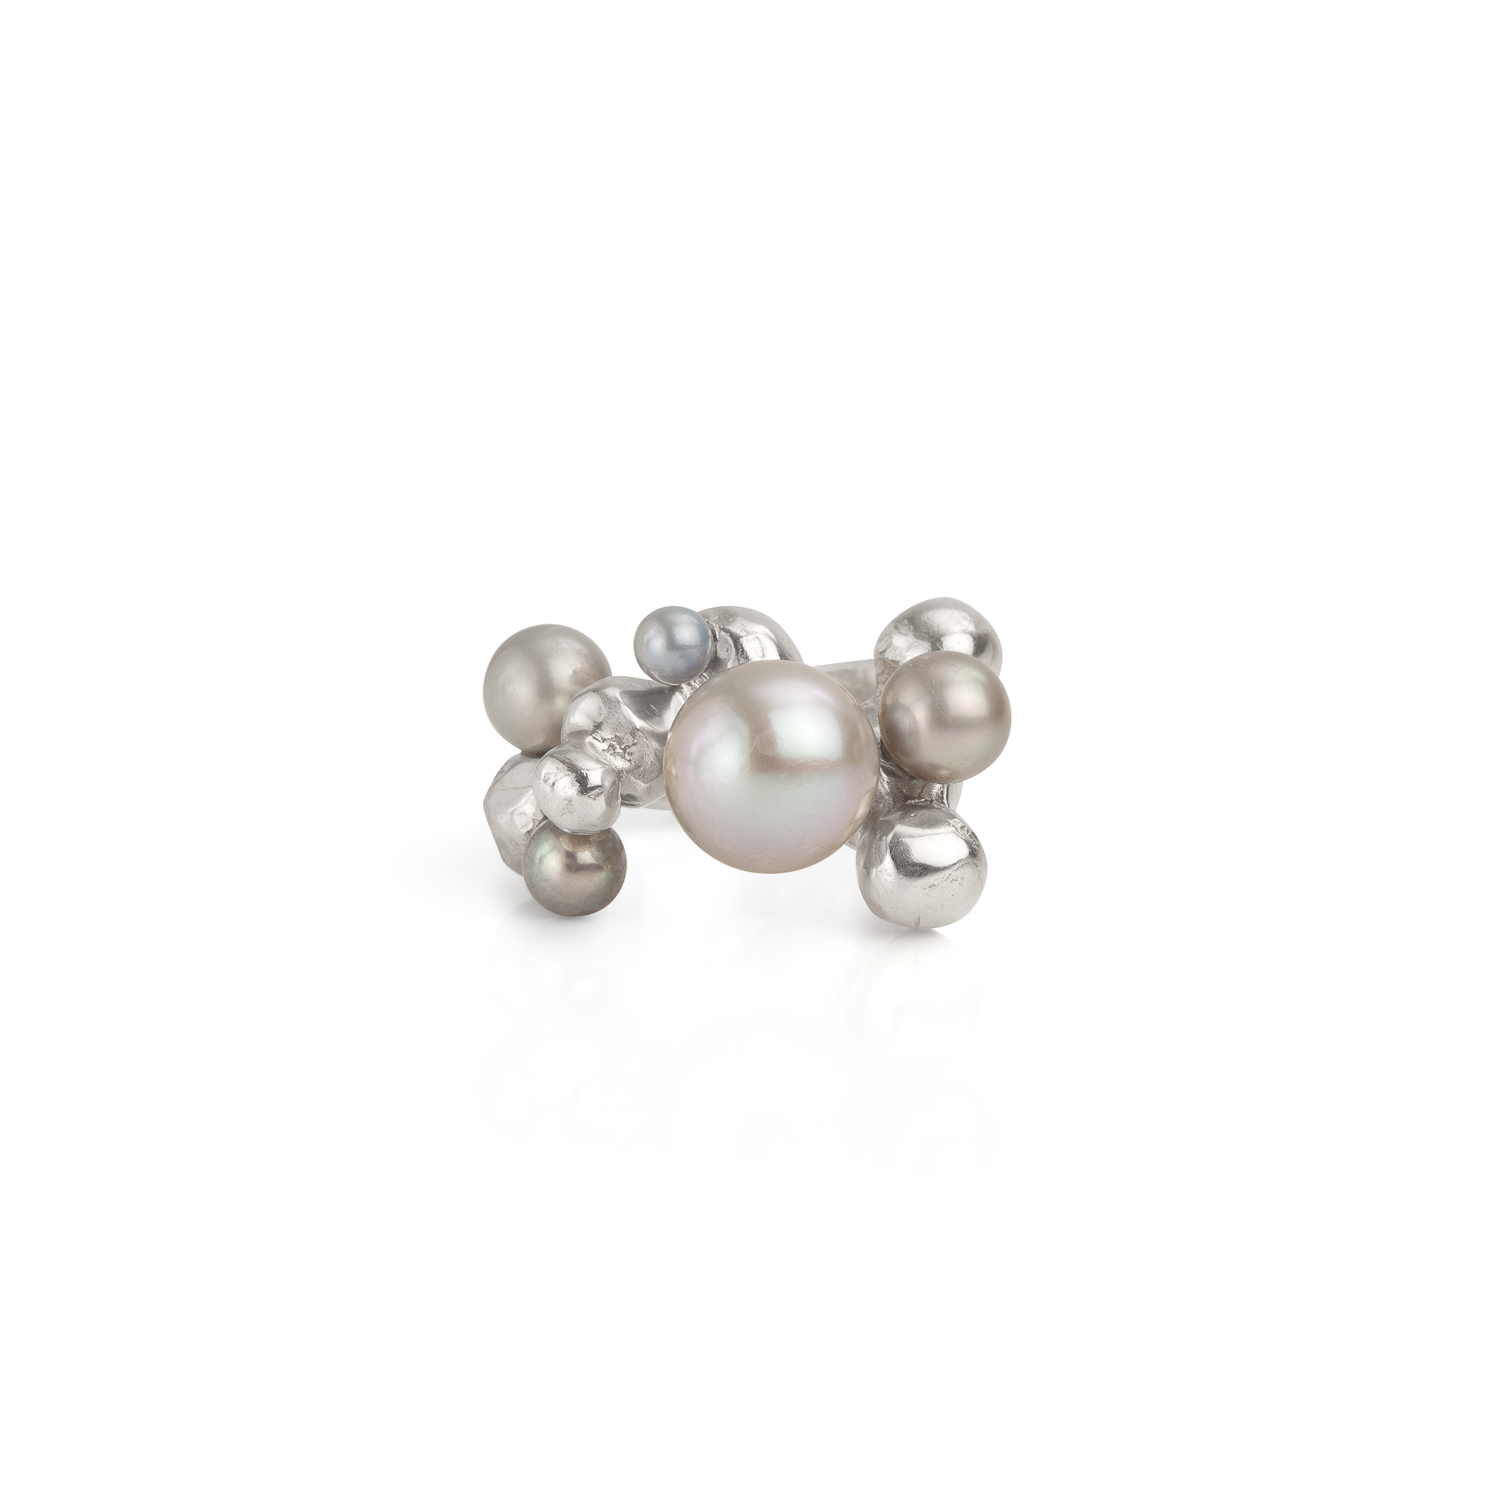 Bubble ring | sterling silver and 5 grey pearls